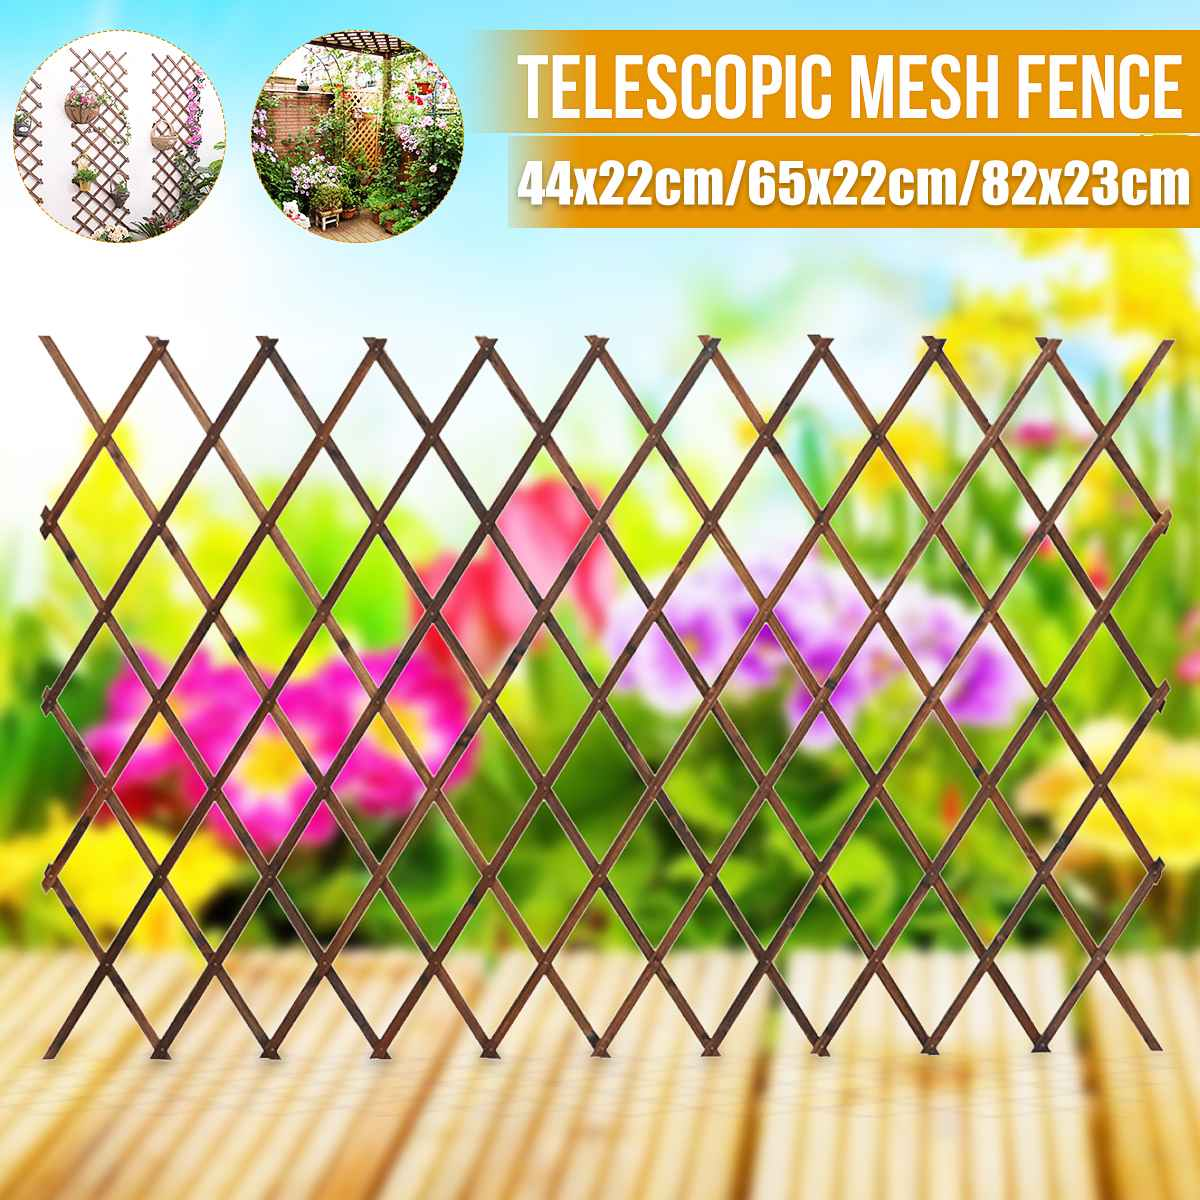 Carbonized Antiseptic Wooden Fence Plant Climb Trellis Support Realistic Garden Park Courtyard Decoration 3 Size